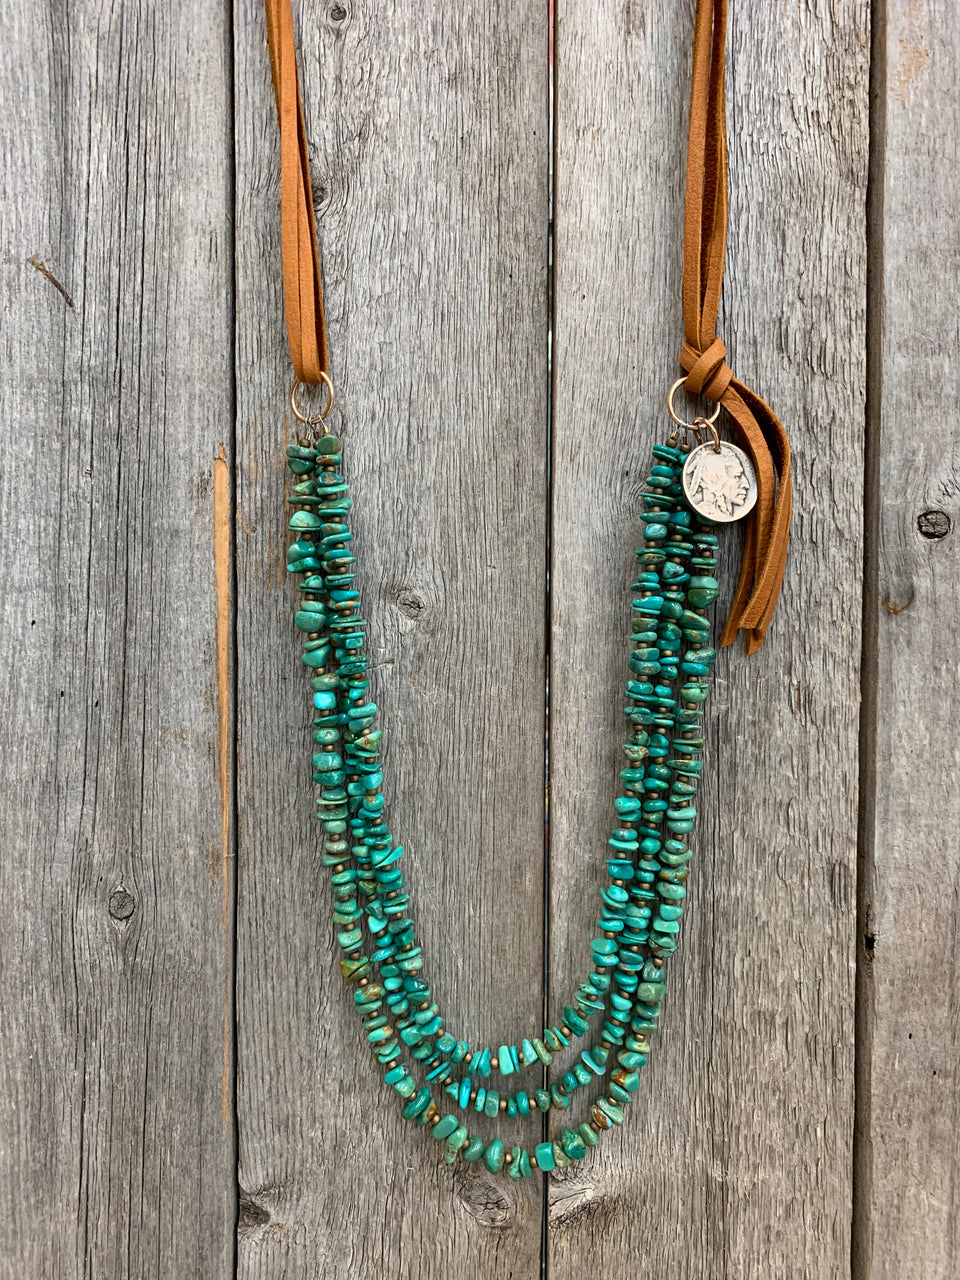 "J.Forks Designs necklace hanging on wooden backdrop. This necklace is 32"" Kingman Chip Turquoise with Buffalo Nickel Side Drop and Cognac Leather Back"